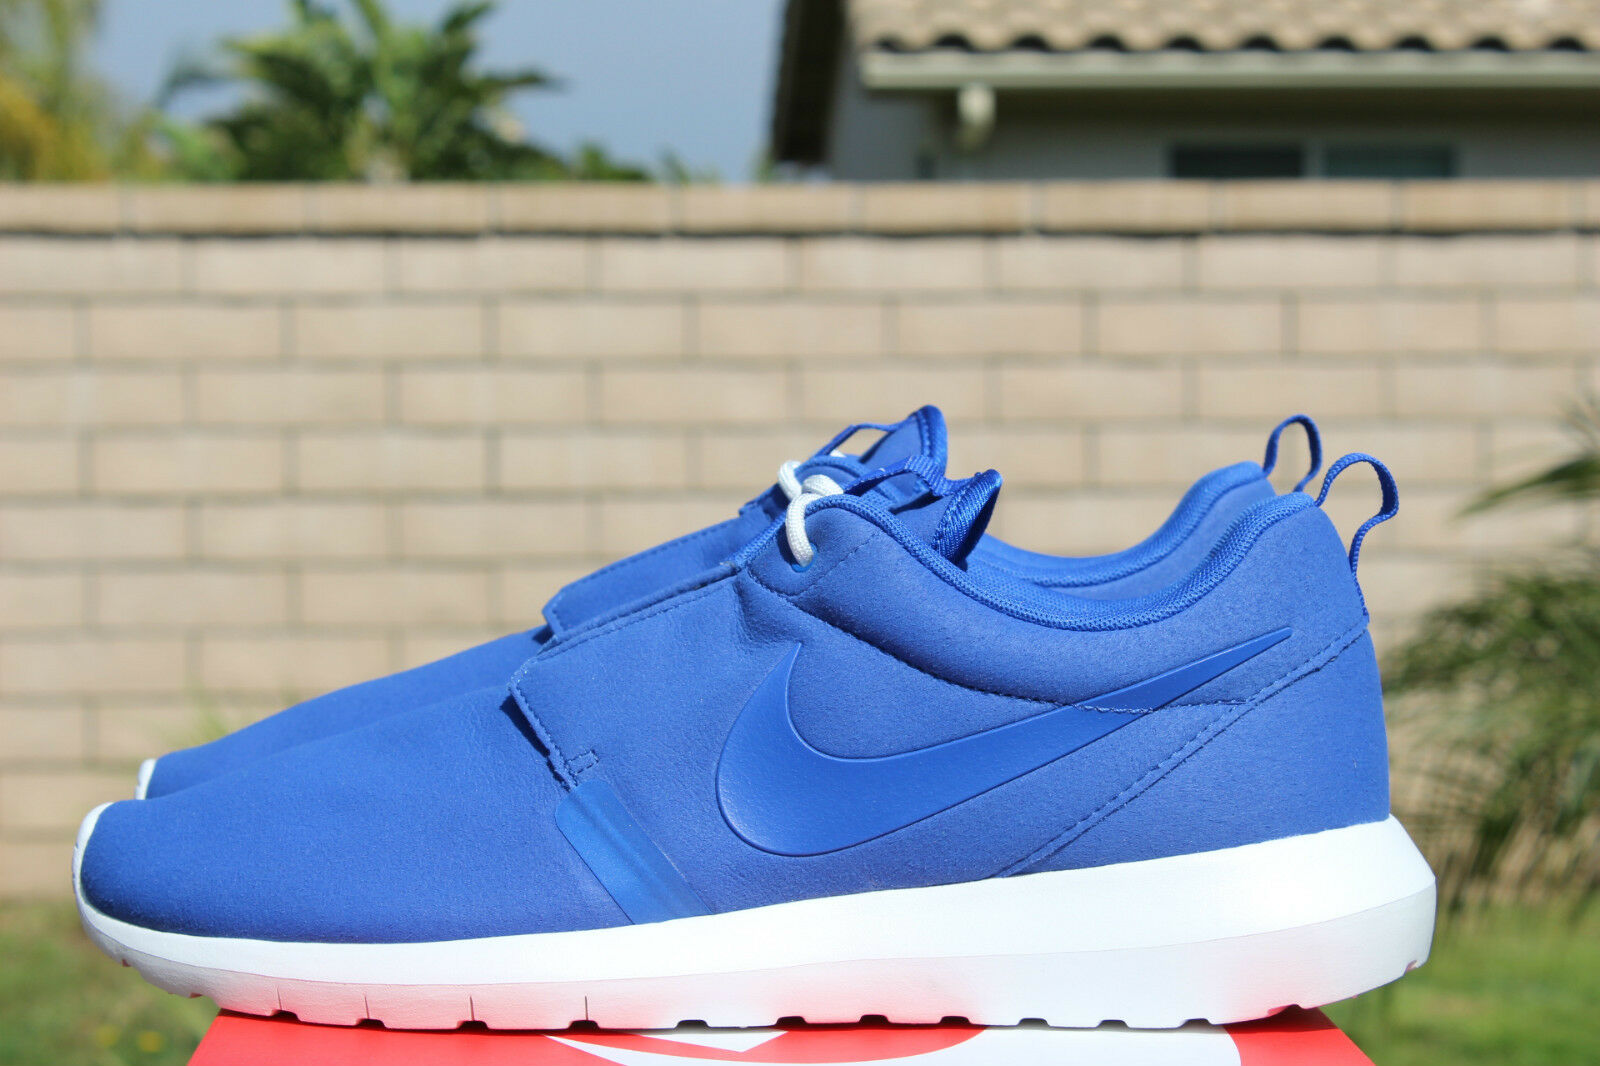 NIKE ROSHERUN NM 11.5 NATURAL MOTION ROYAL BLUE SUMMIT WHITE ROSHE 631749 441 Scarpe classiche da uomo